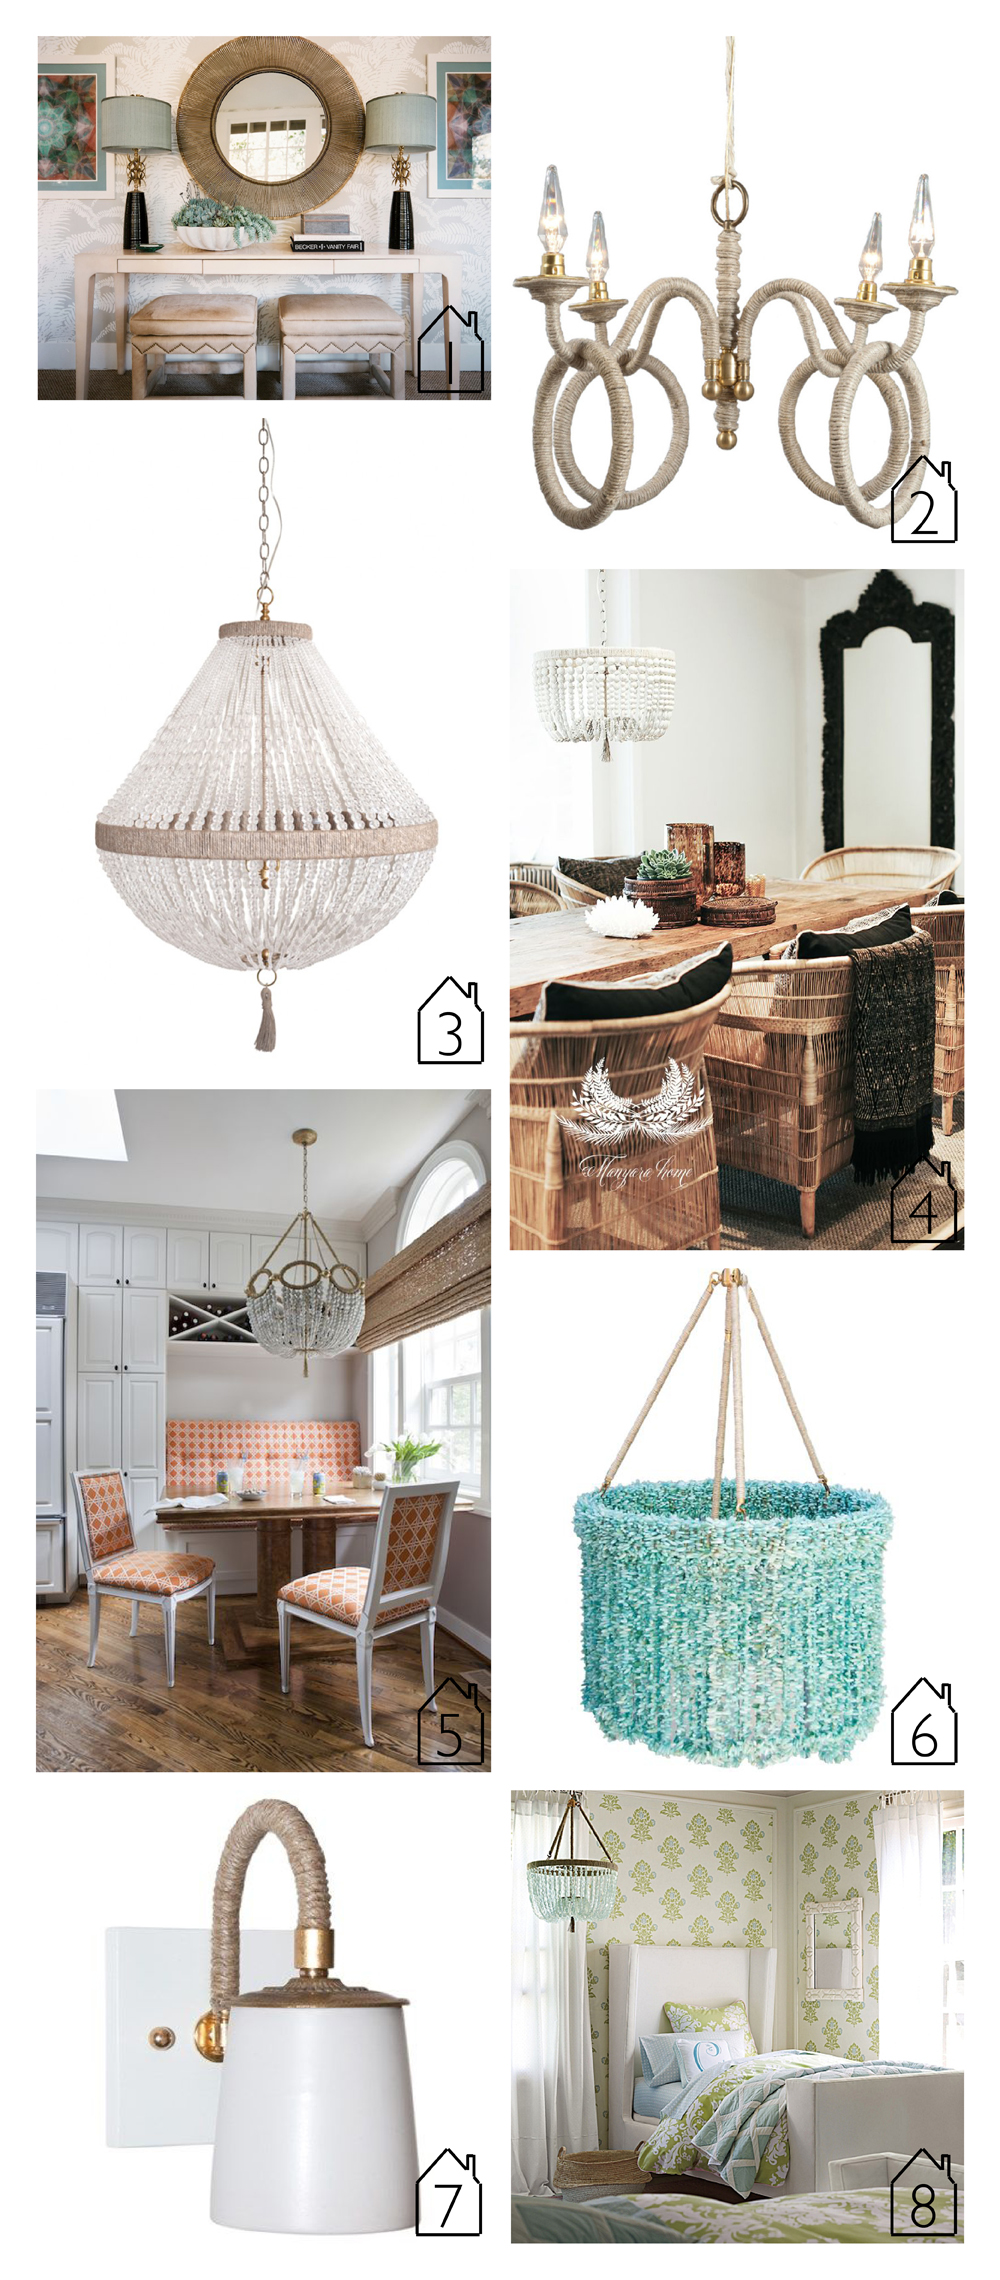 1.  Ananas  lamp via  Hillary Thomas Interiors   2.  Sophia IV  via  Ro Sham Beaux   3.  Orbit  via  Ro Sham Beaux   4.  Malibu  vi  Manyara Home    5.  Fiona  via  Roxanne Lumme Interiors   6. Lily via  Scenario Home   7. Katy wall sconce via  Layla  Grayce  8.  Seychelles  via  Serena and Lily